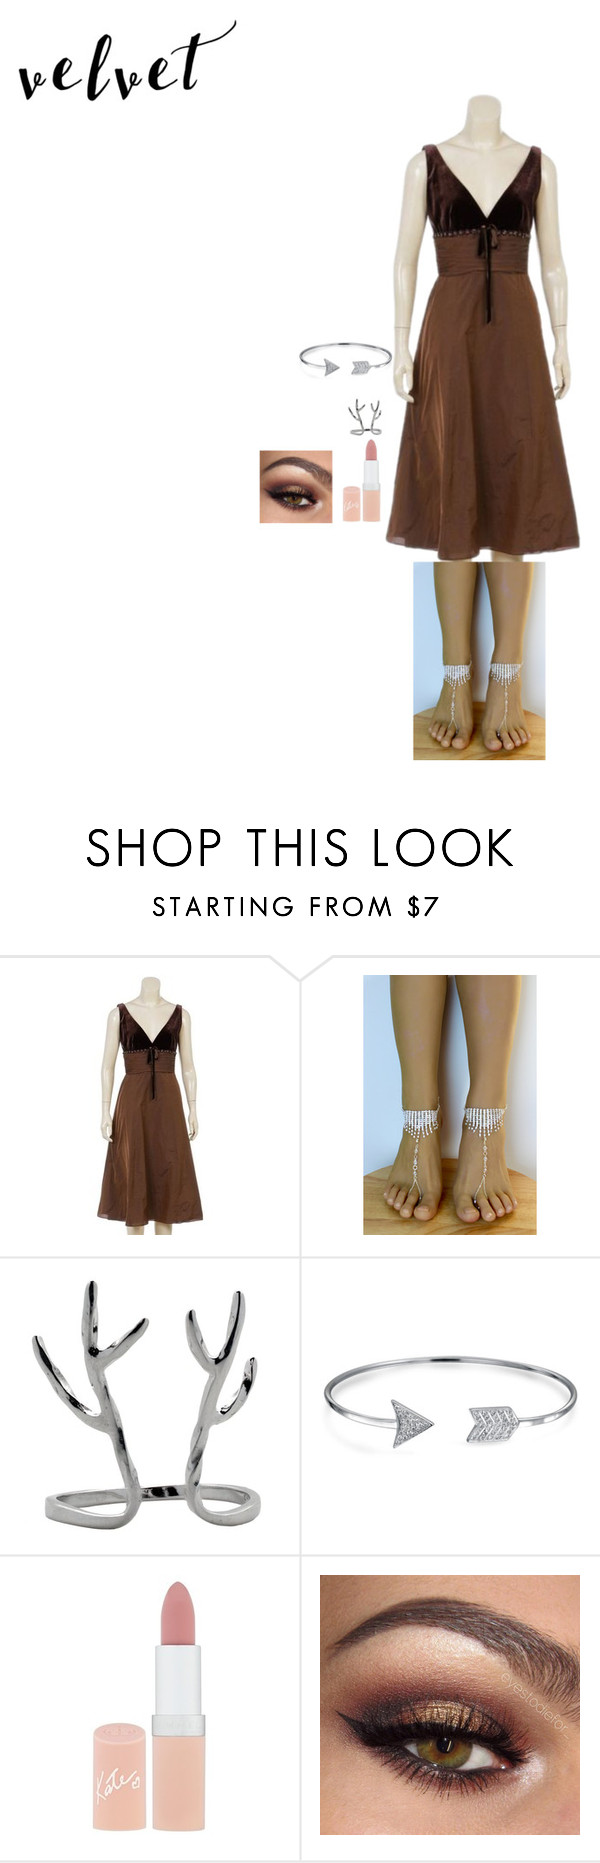 """Hidden Trails in The Forest"" by fencingsword ❤ liked on Polyvore featuring Velvet, Bling Jewelry and Rimmel"